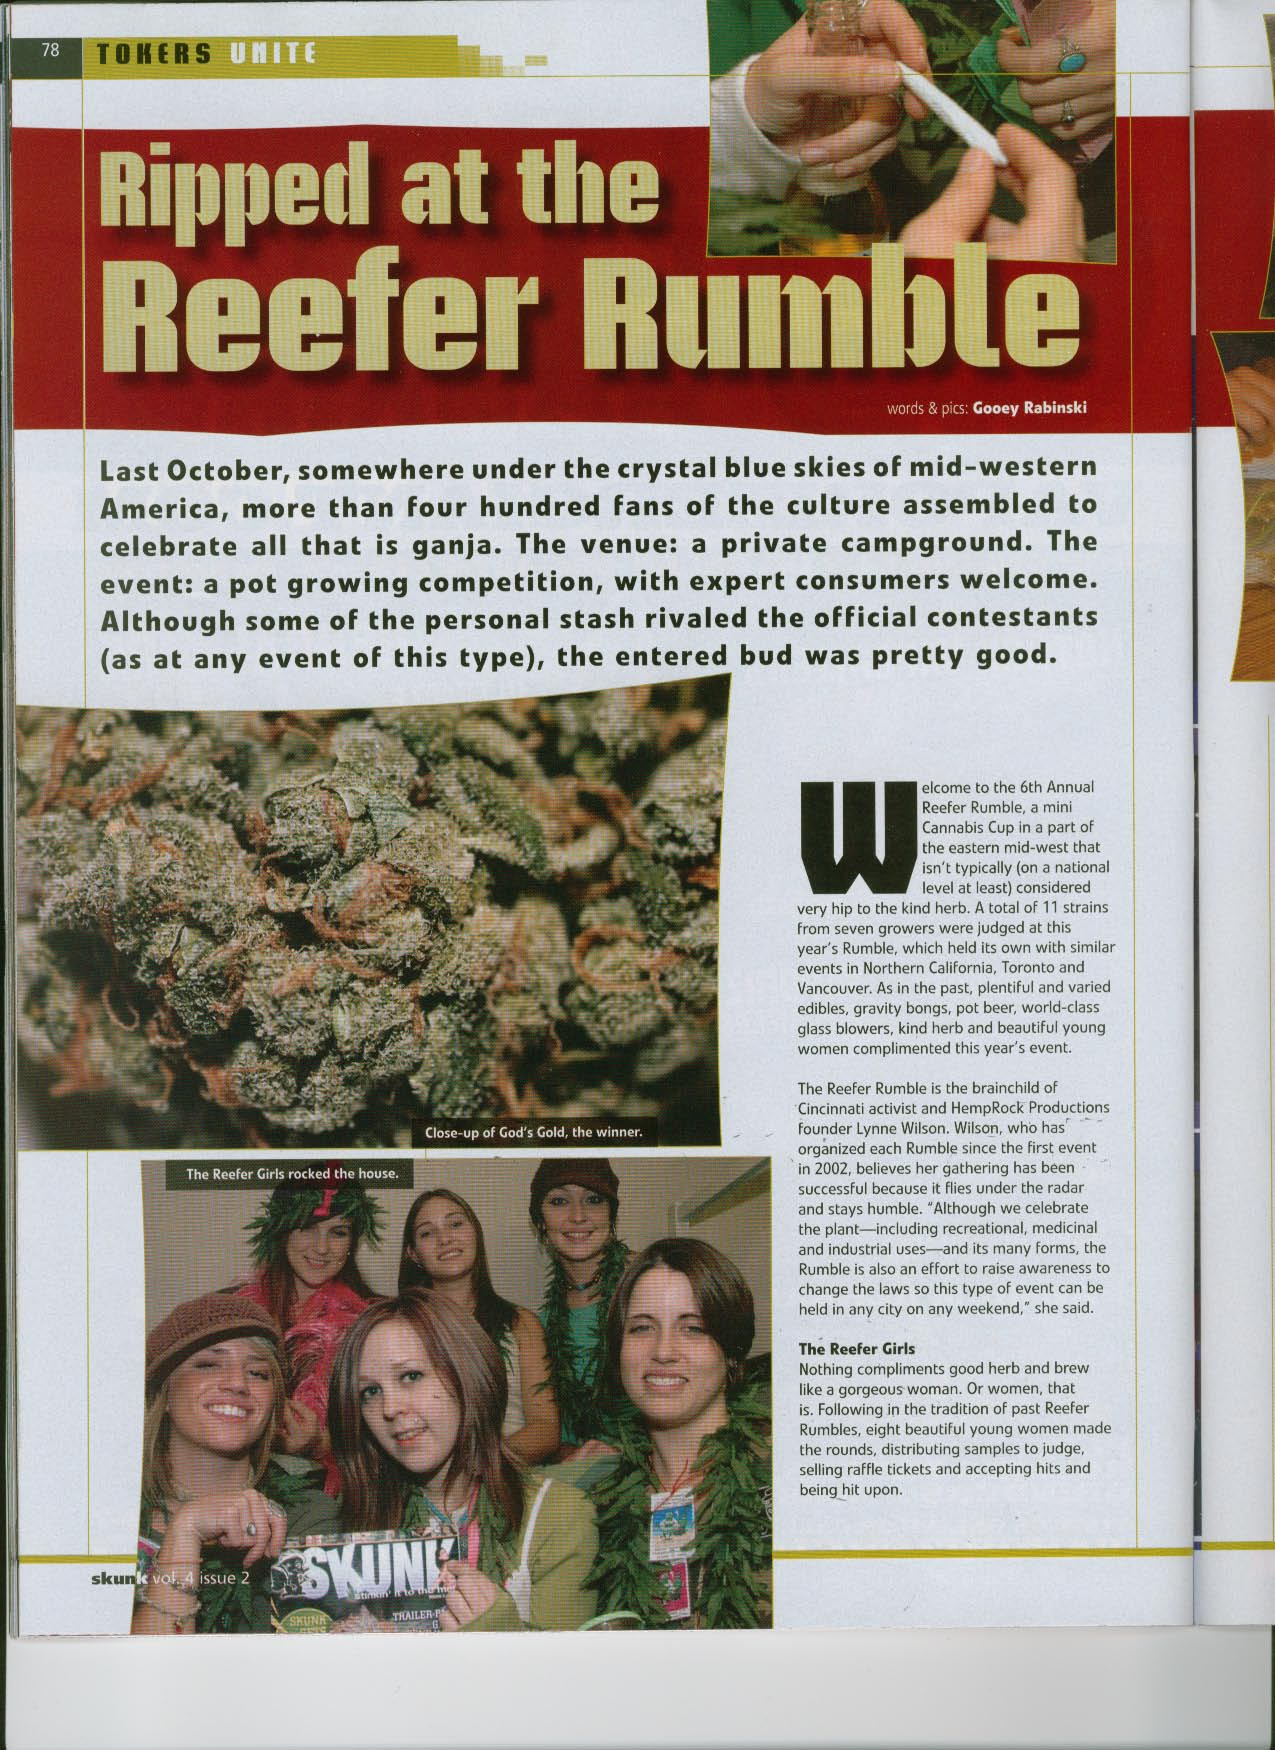 Skunk Magazine article